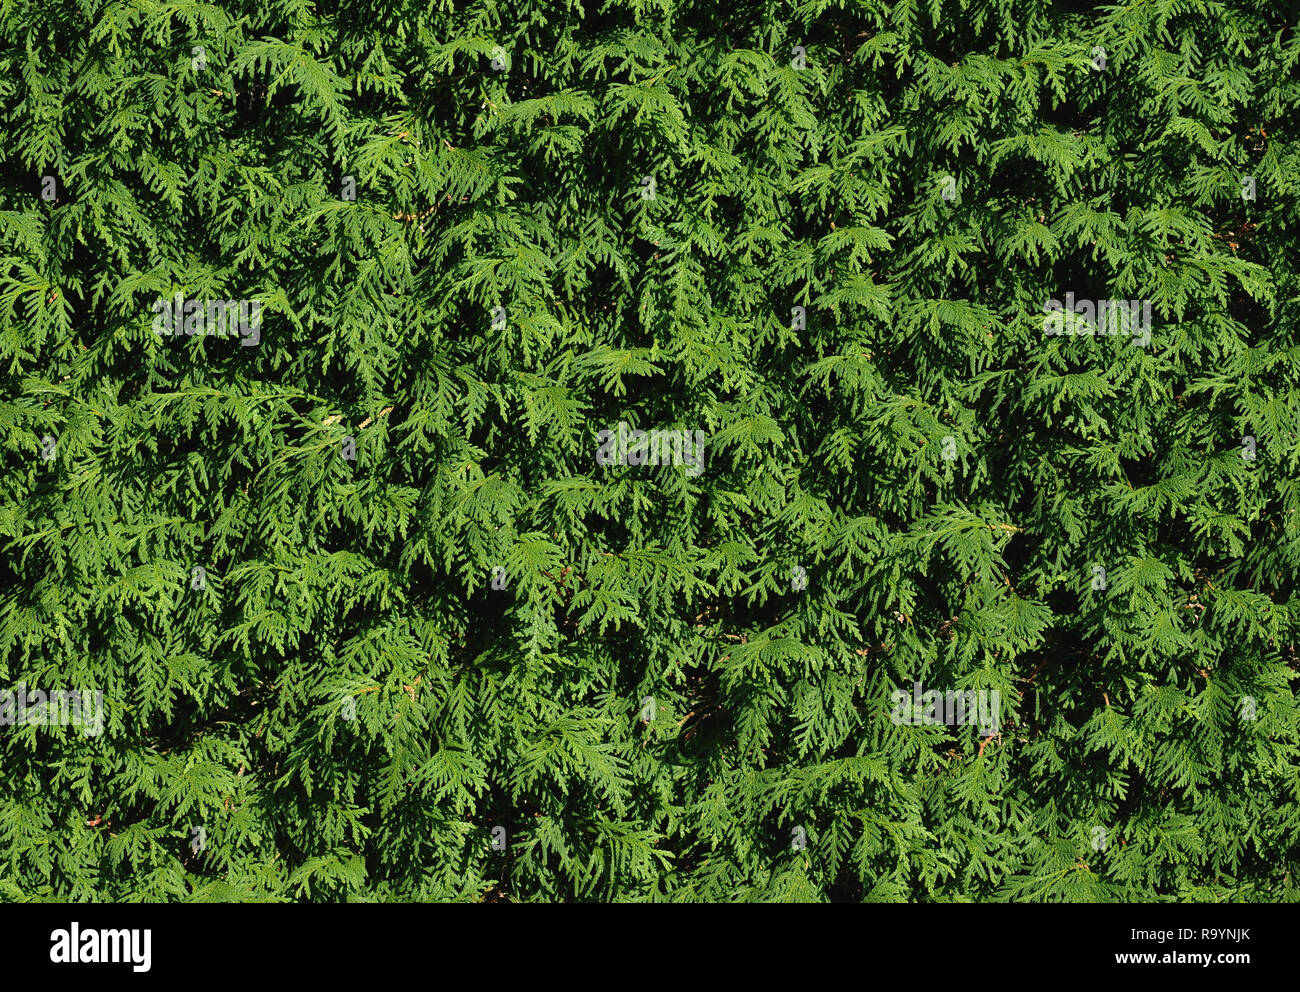 Trimmed hedge of thuja occidentalis - Stock Image